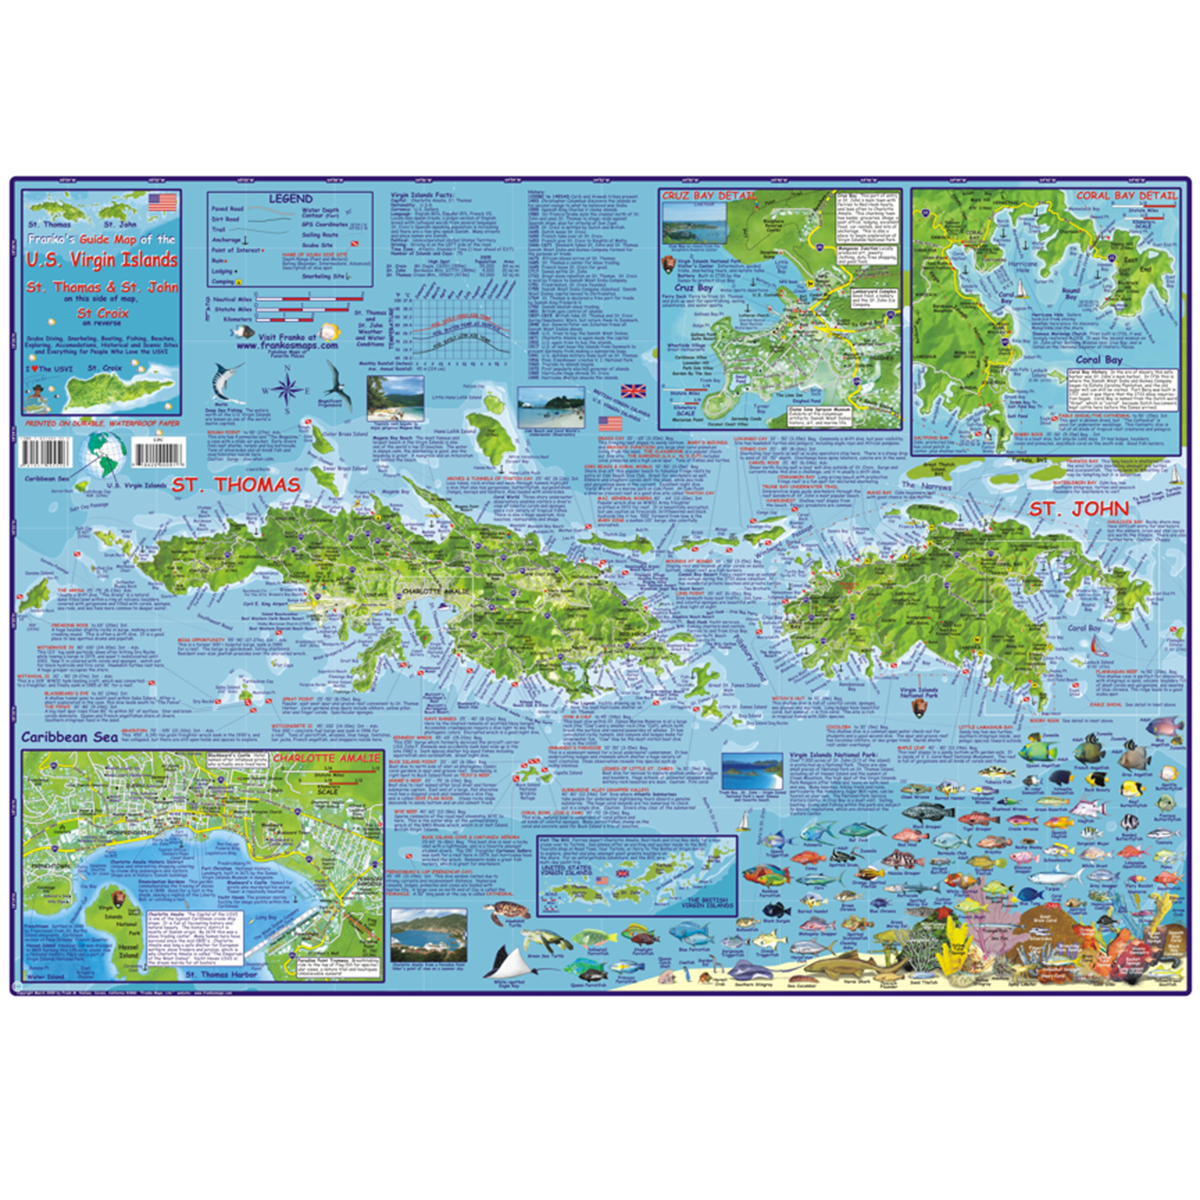 franko maps us virgin islands dive creature guide 185 x 26 inch